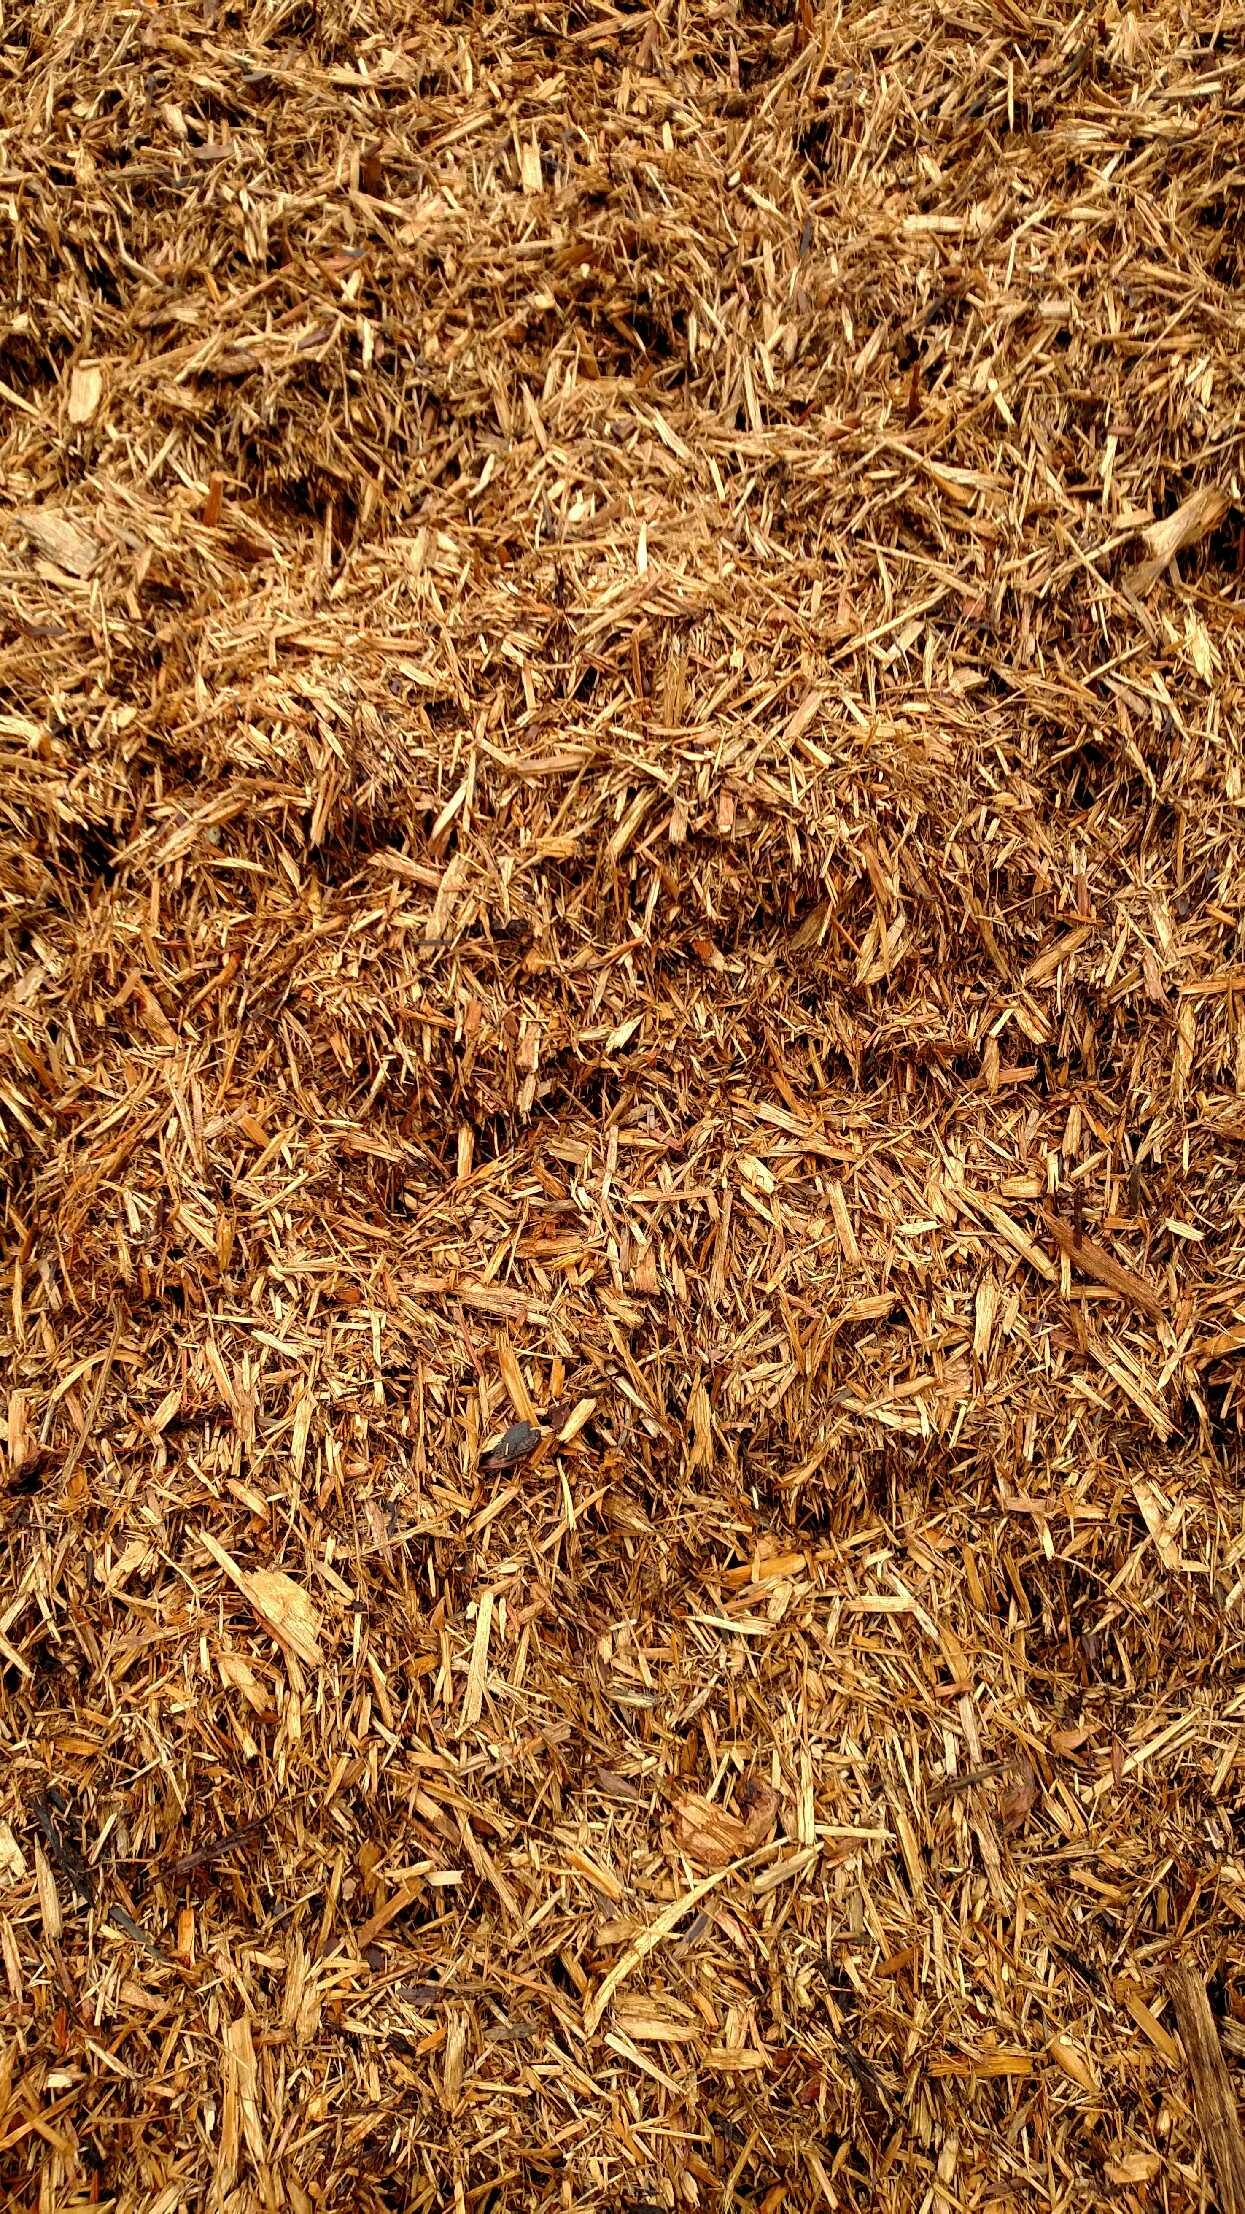 Cypress Mulch available in-store and online for pickup or delivery at Asheville Mulch in North Carolina